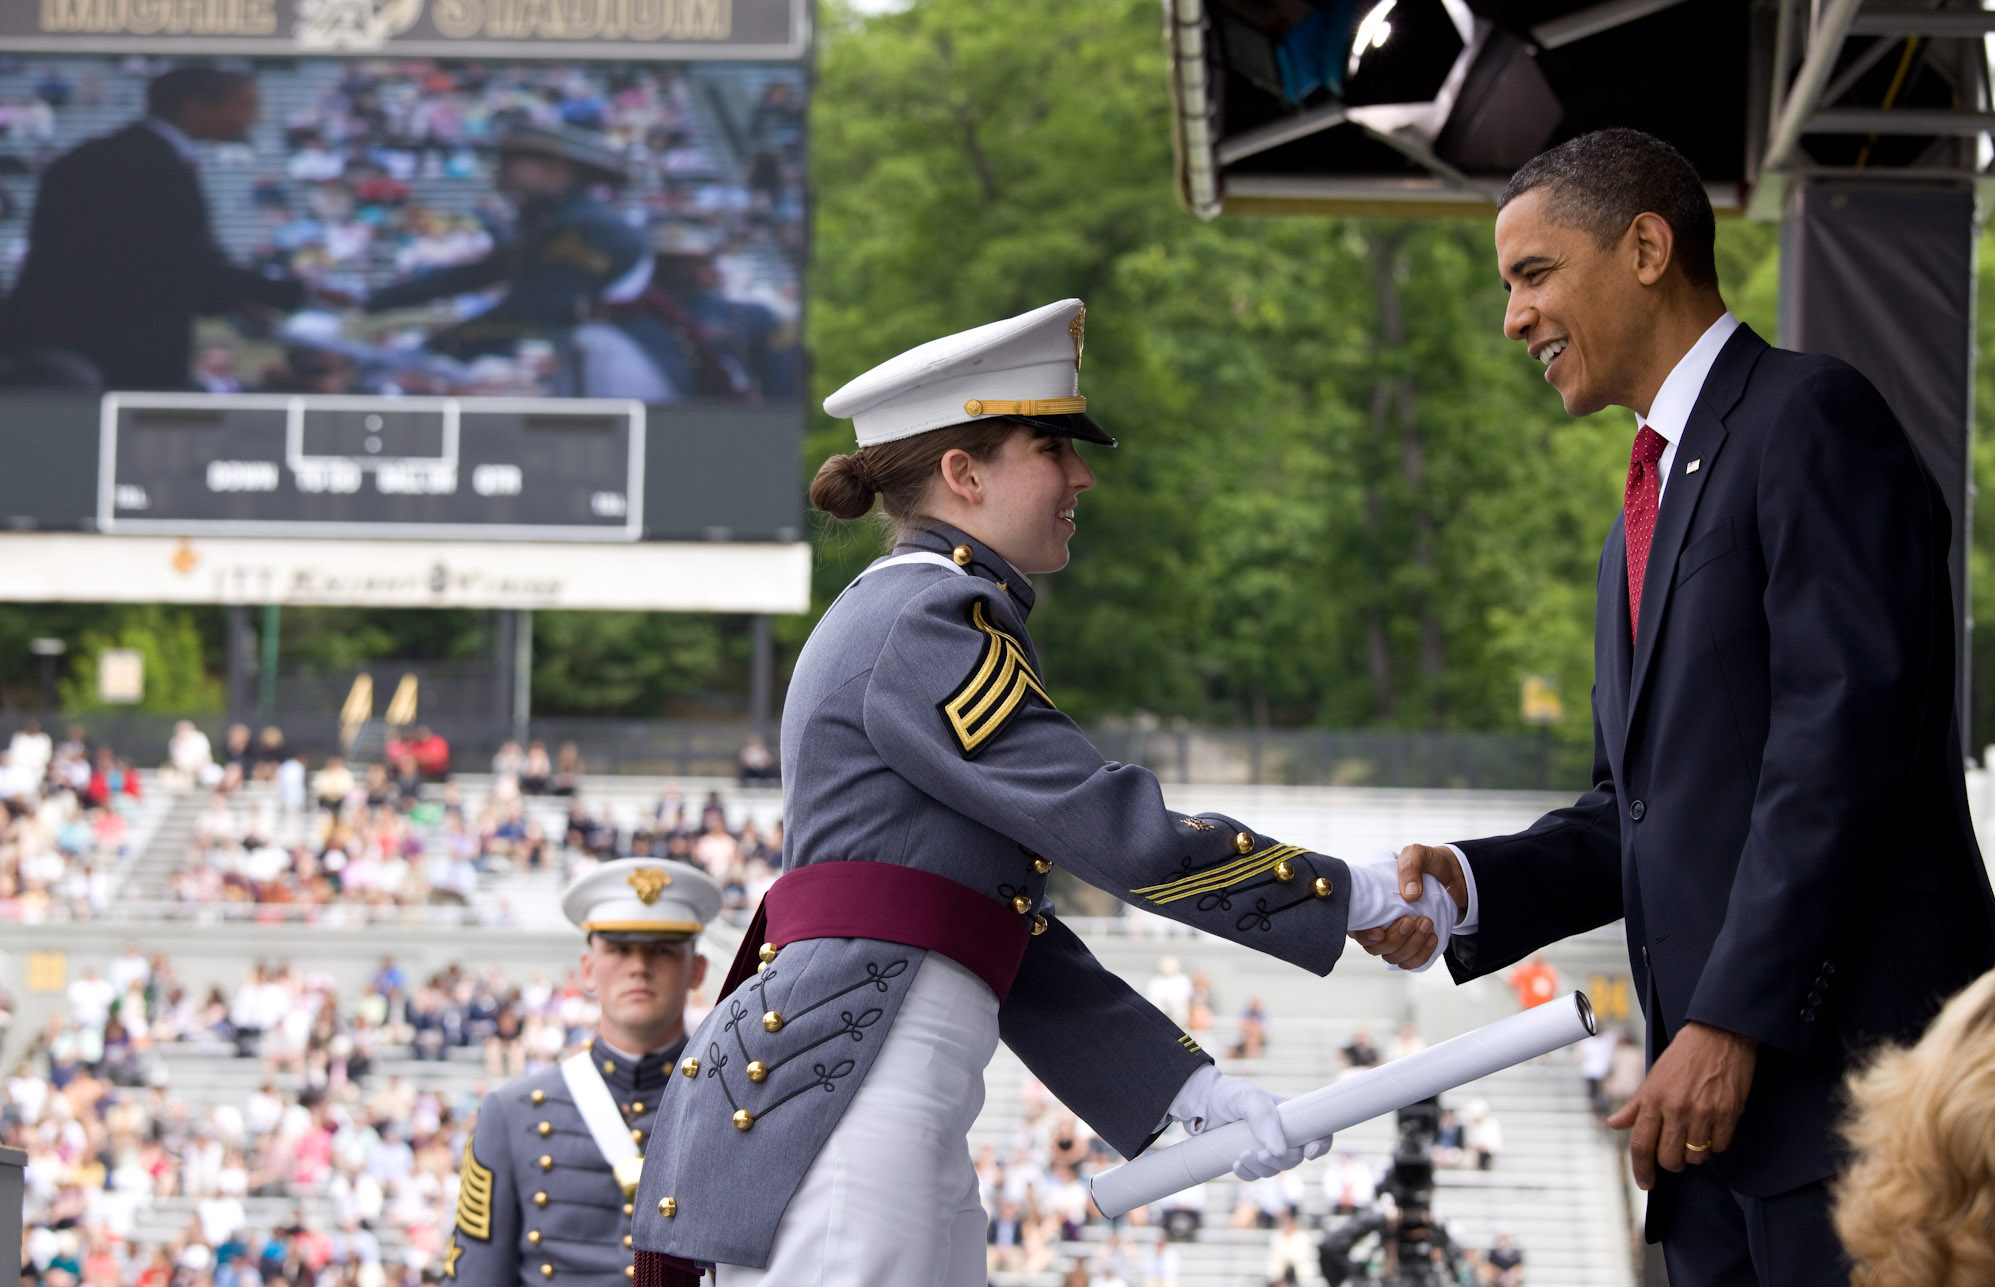 President Obama at West Point Commencement